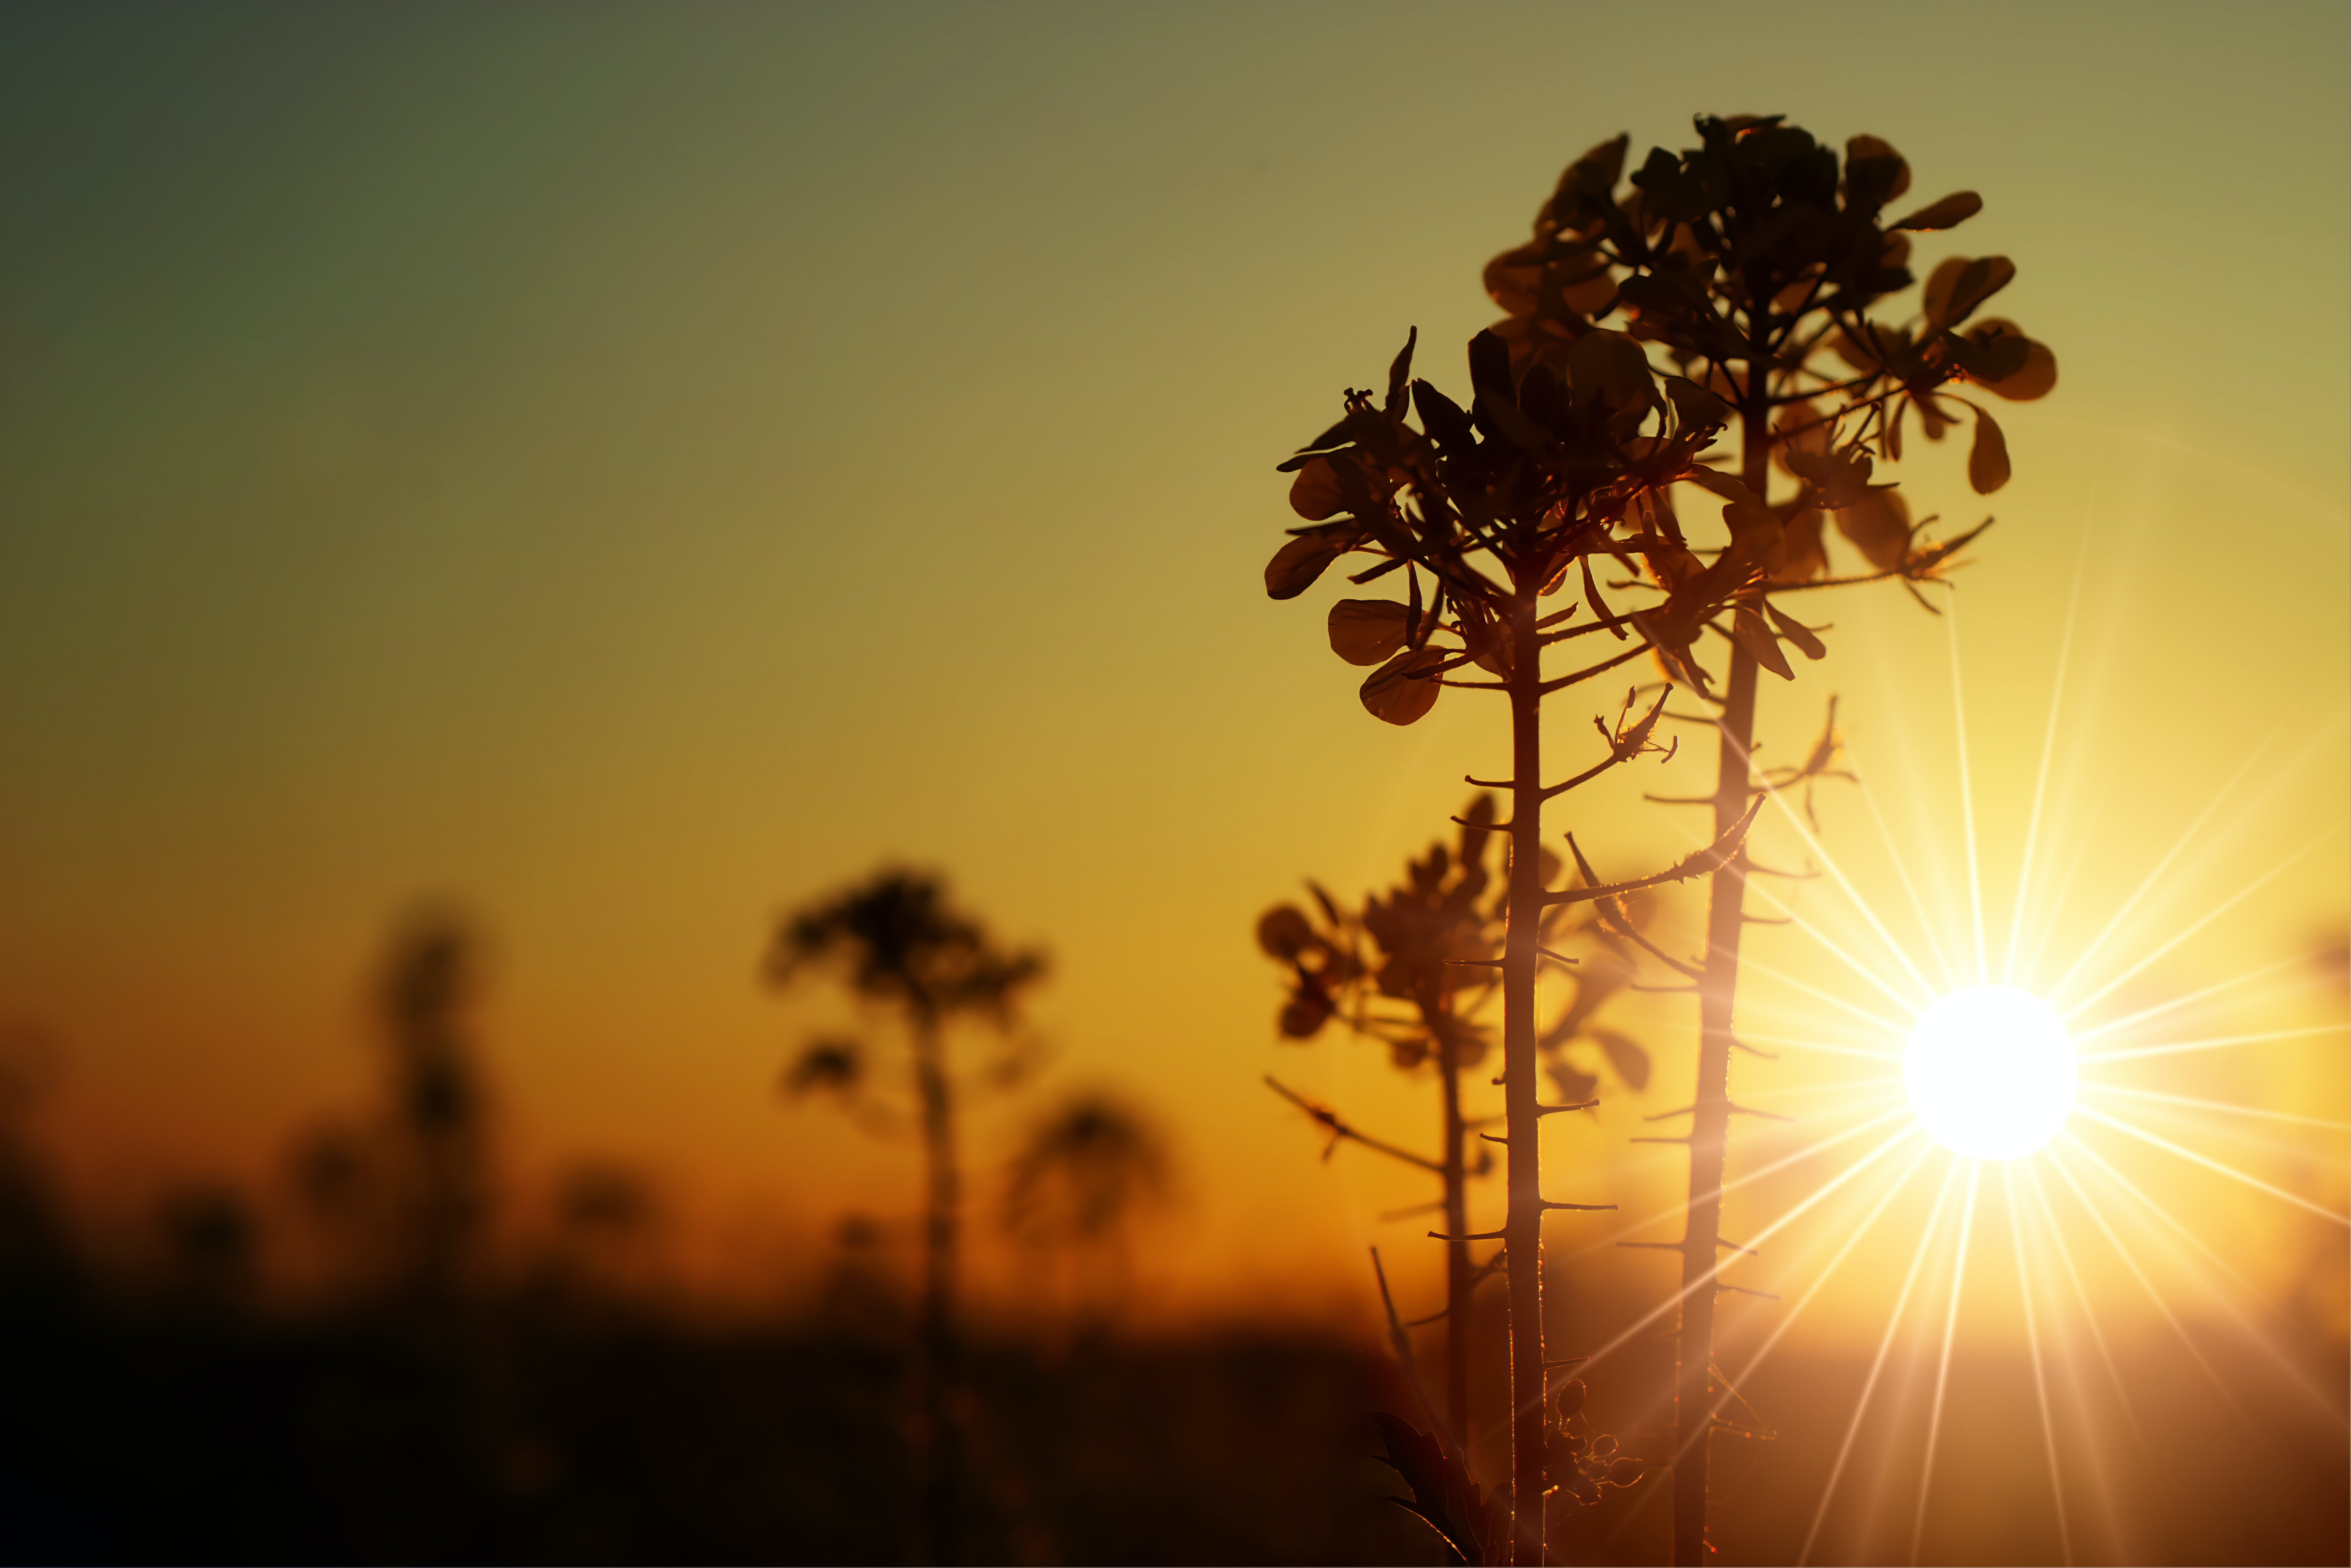 Silhouette Photo of Green Leafed Plant